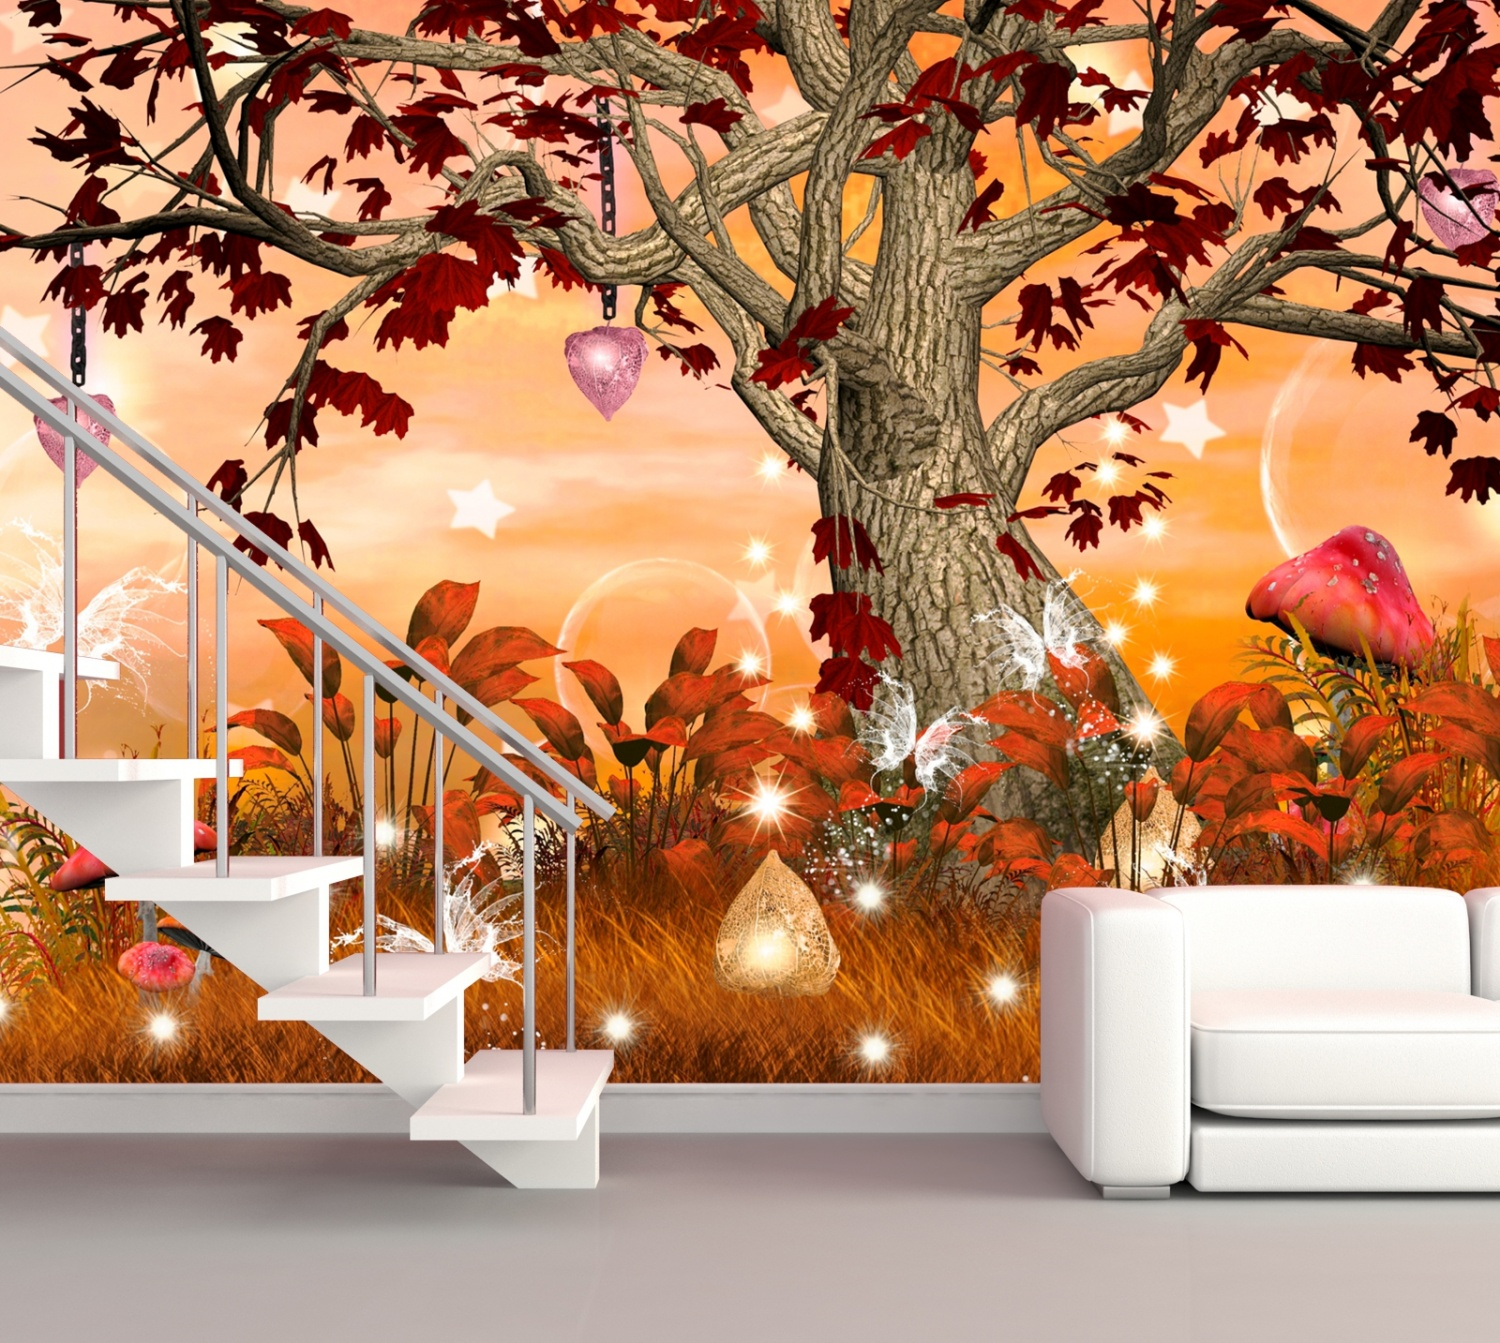 xxl poster fototapete kinderzimmer wandtapete vlies fantasy zauberbaum ebay. Black Bedroom Furniture Sets. Home Design Ideas